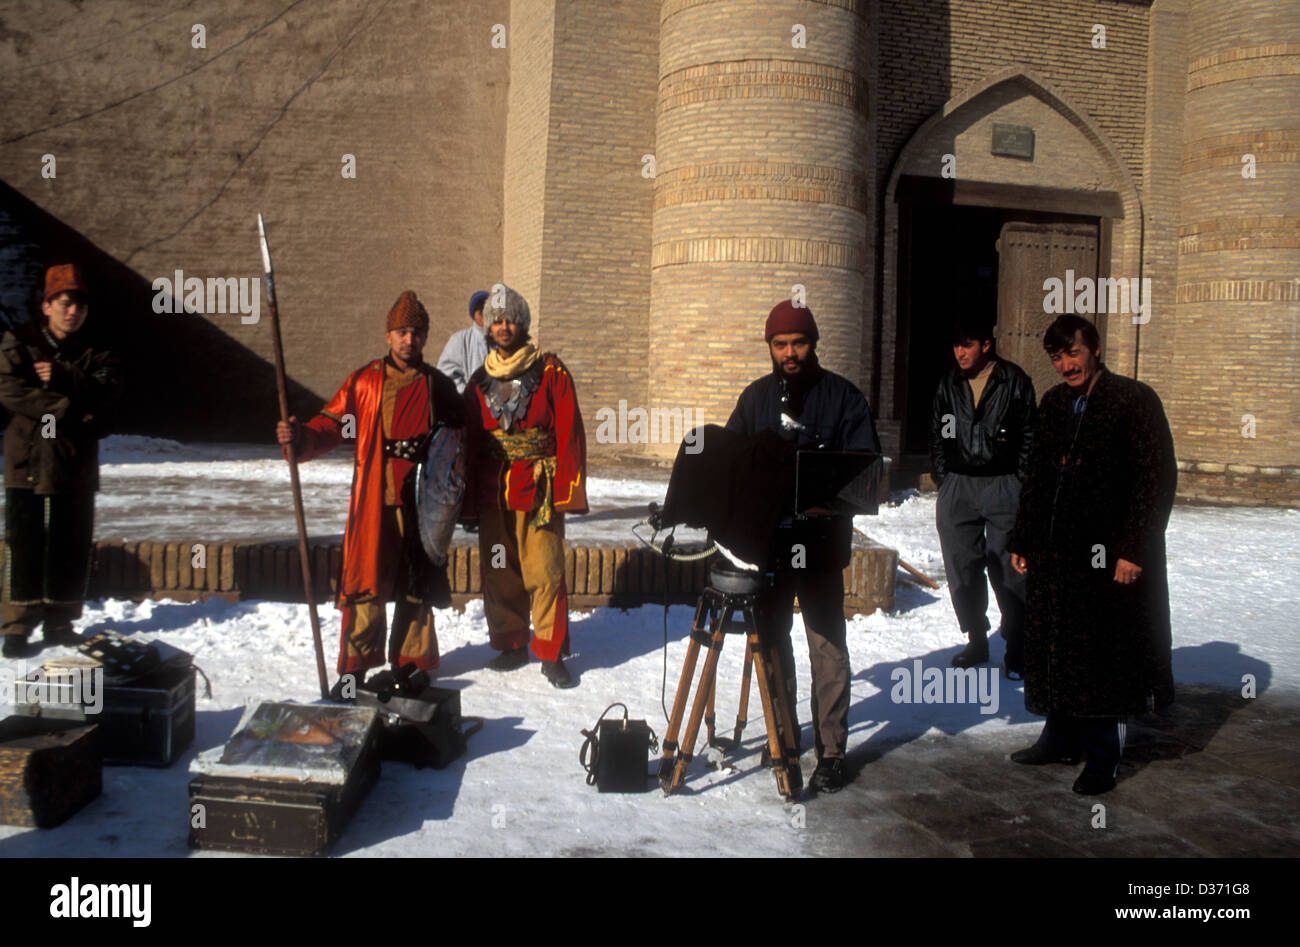 Shooting a movie in Khiva, Uzbekistan - Stock Image